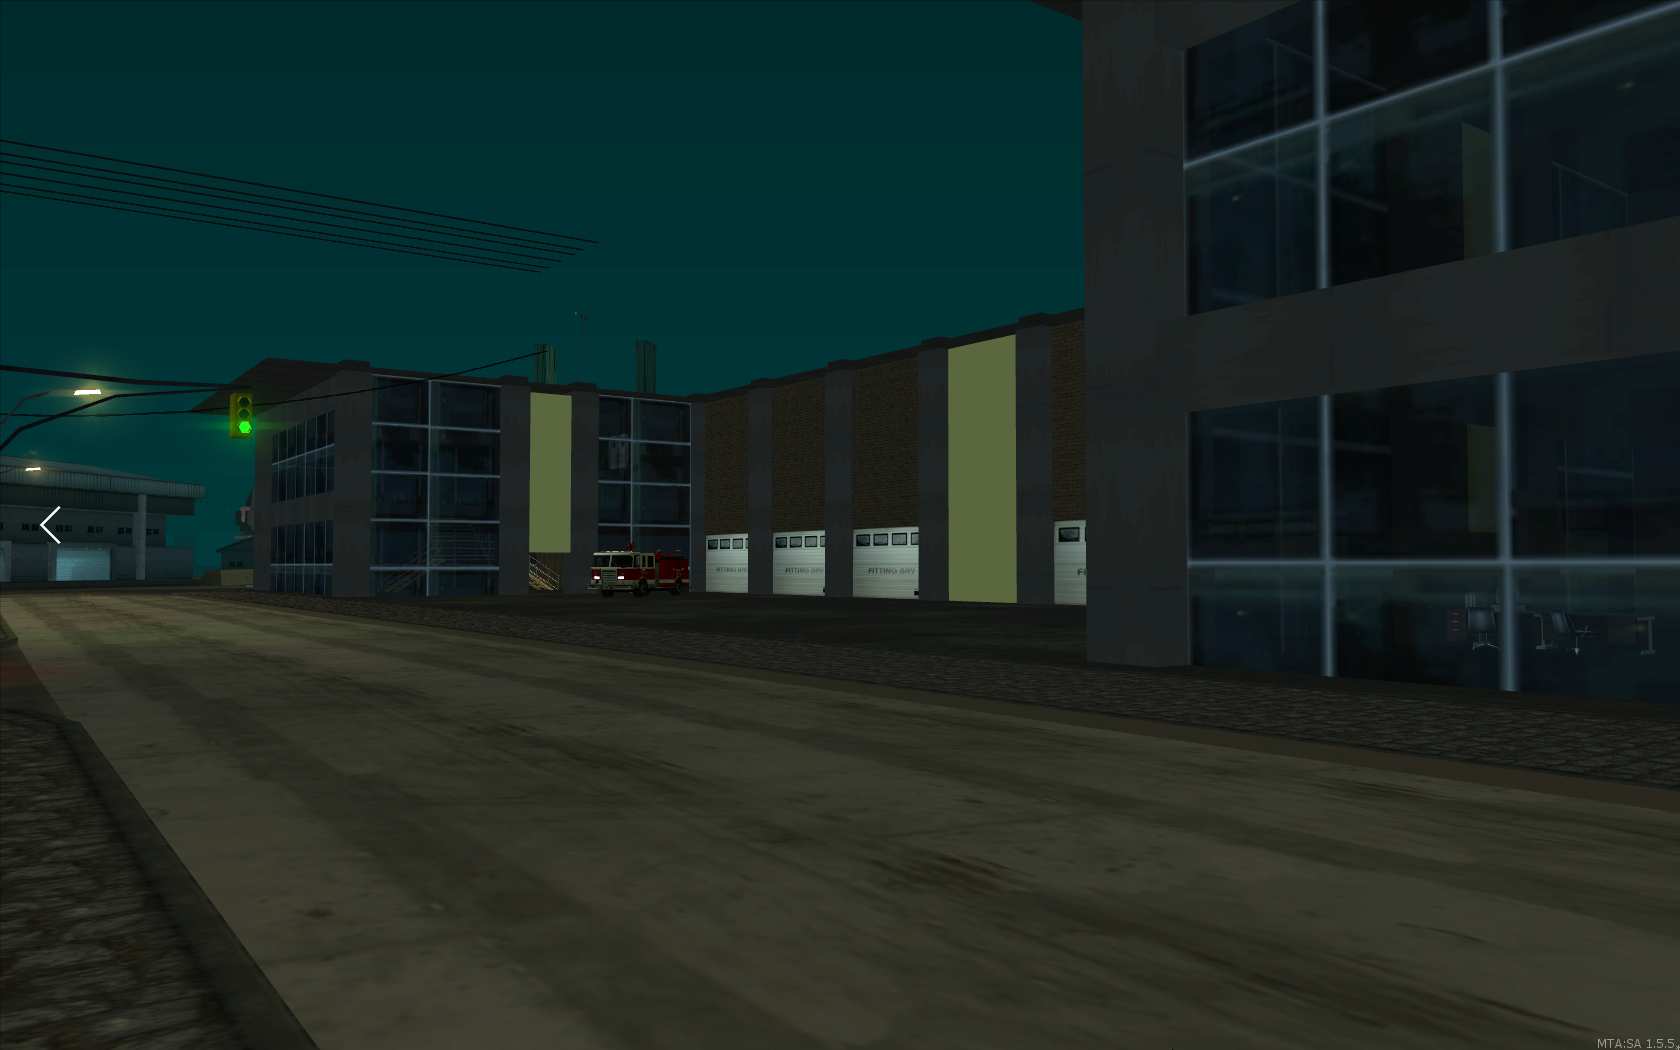 Upcoming Fire Department at night - posted by Tosfera